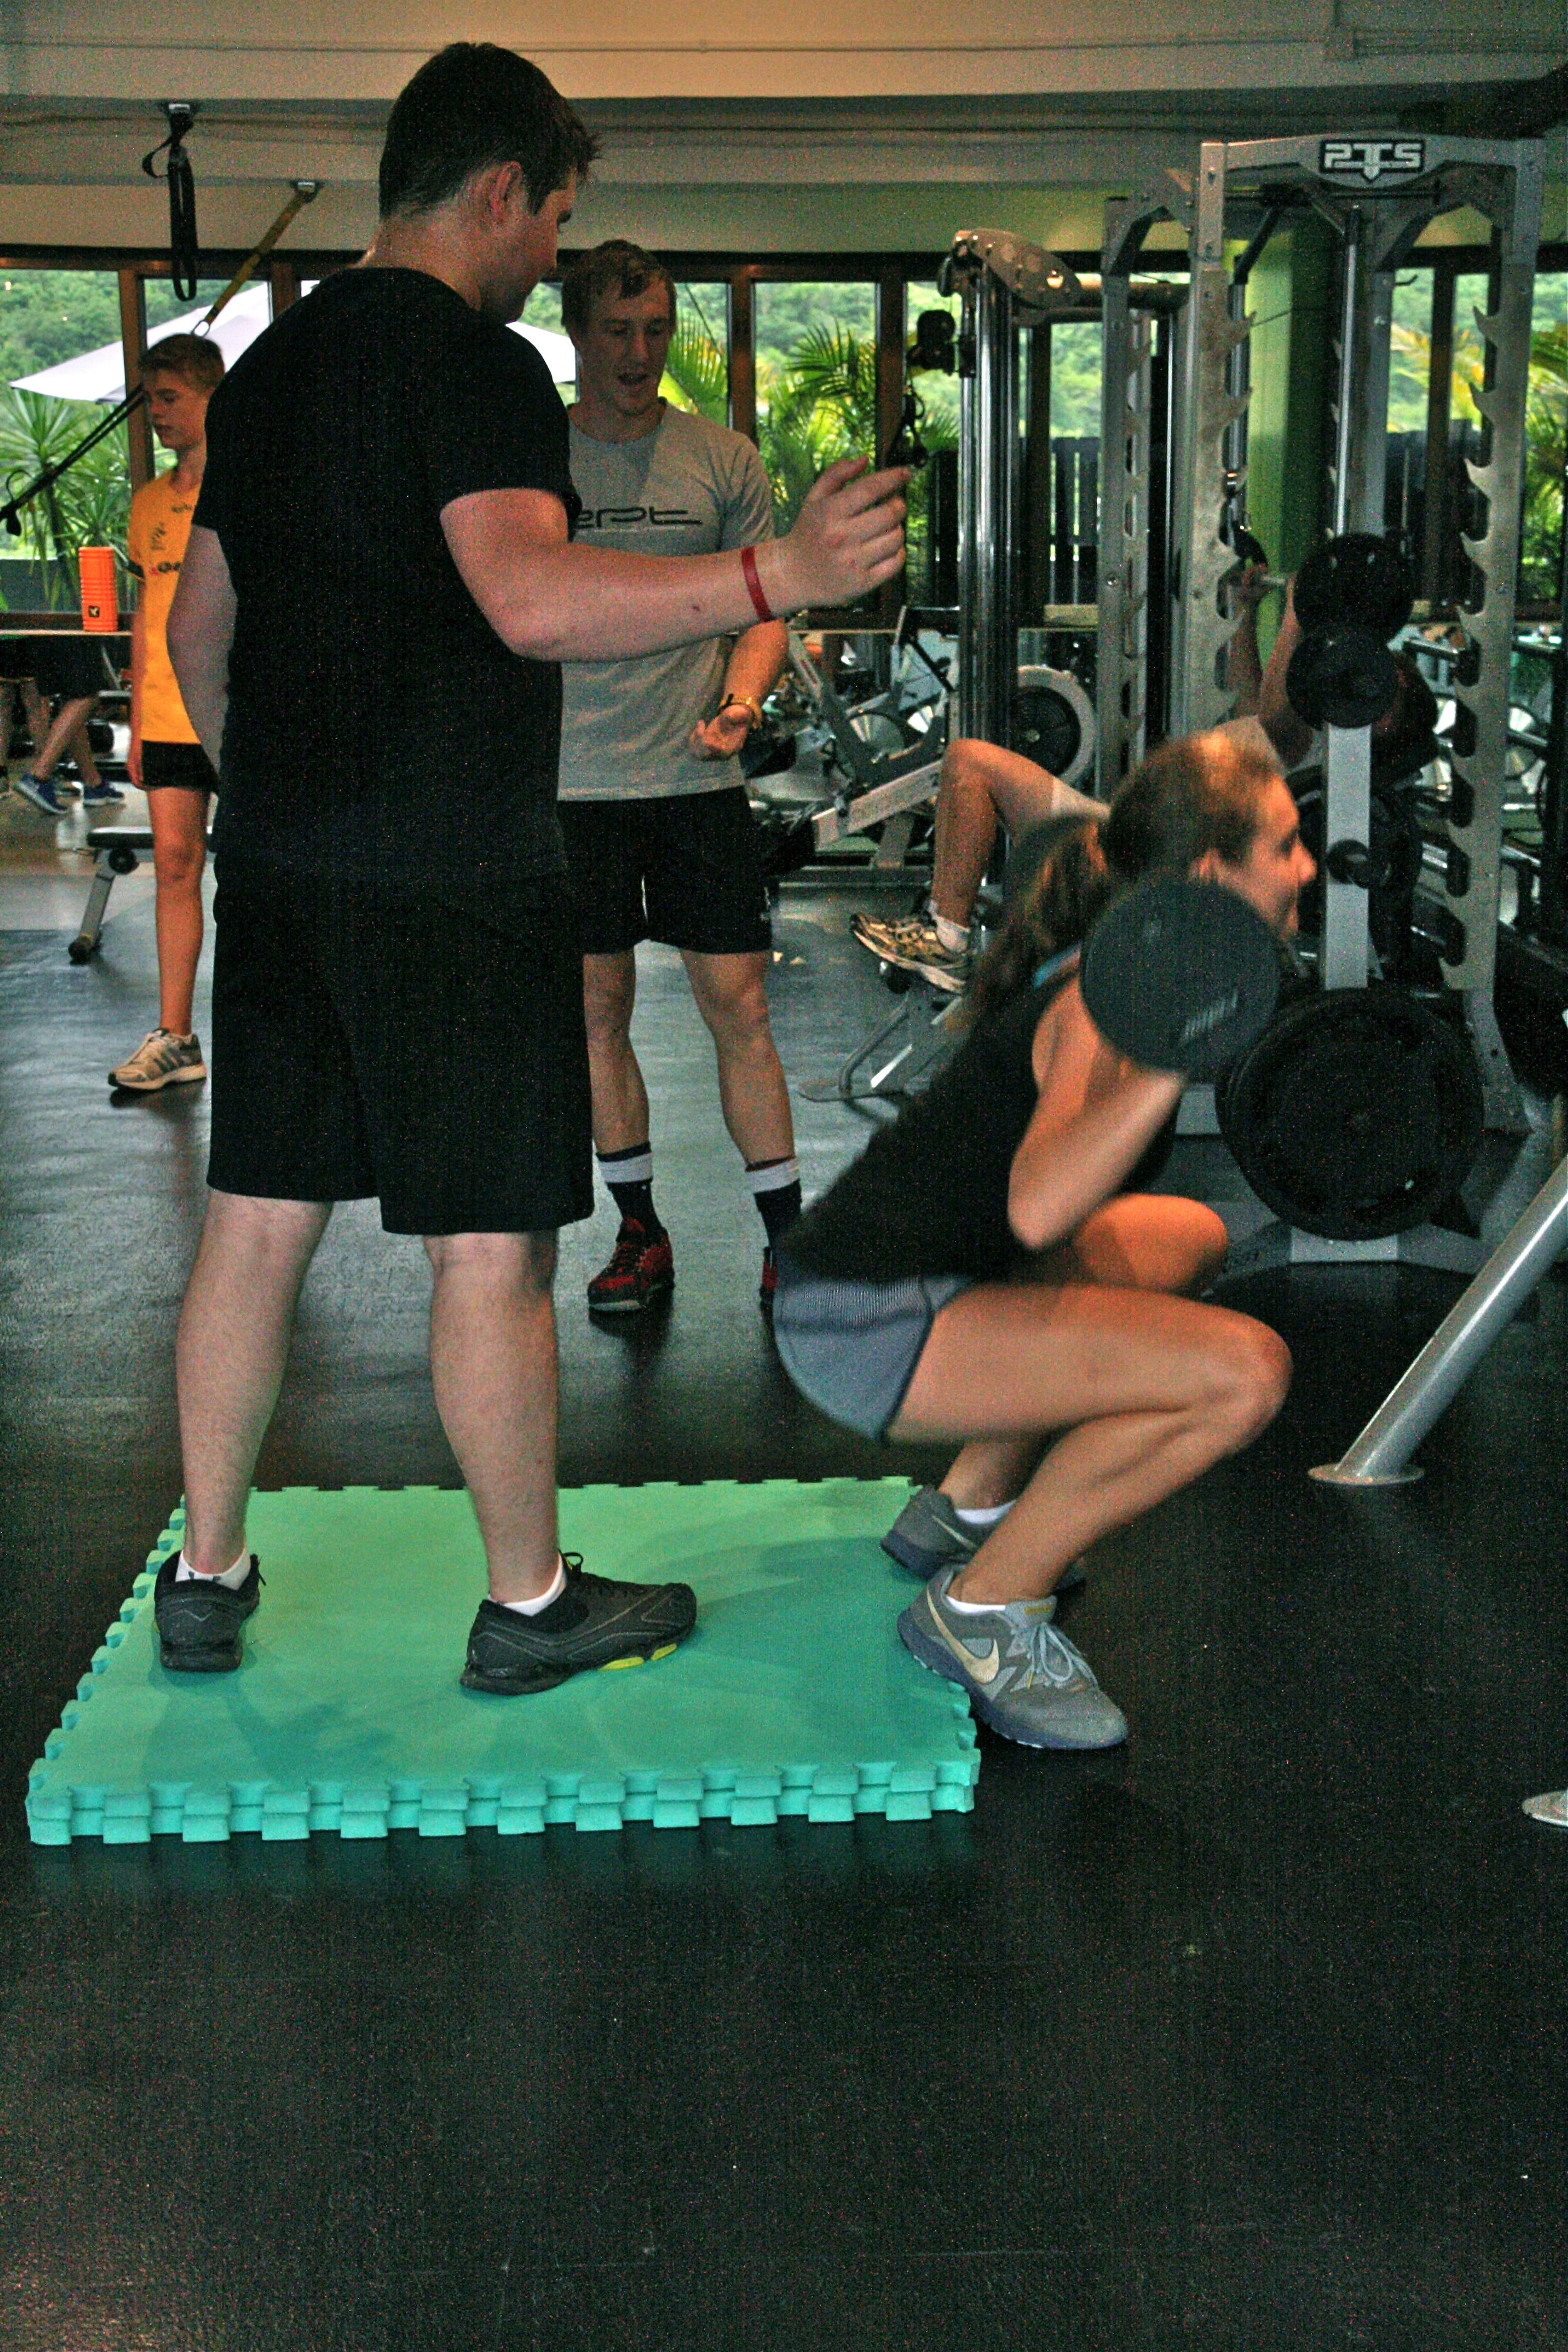 Girl teen deep squatting with trainer watching - side view.jpg